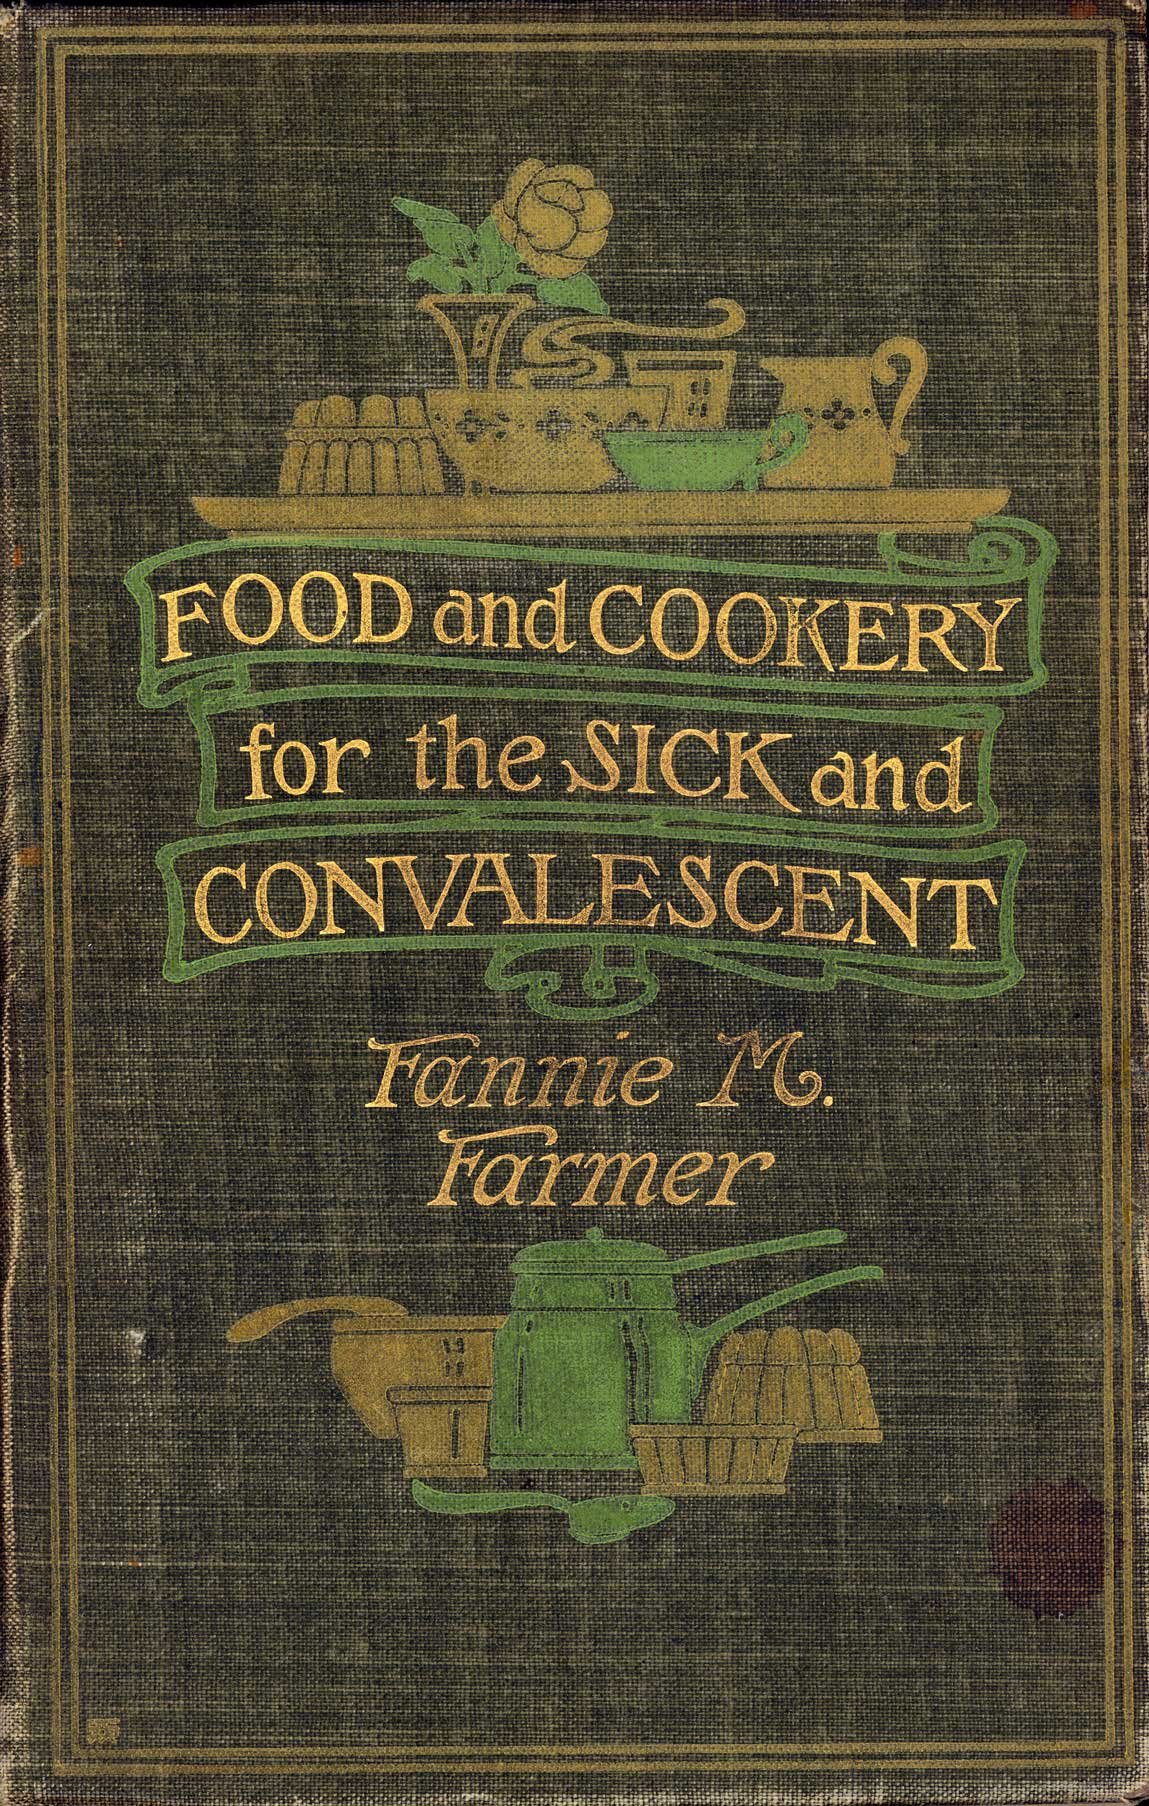 Food and cookery for the sick and convalescent